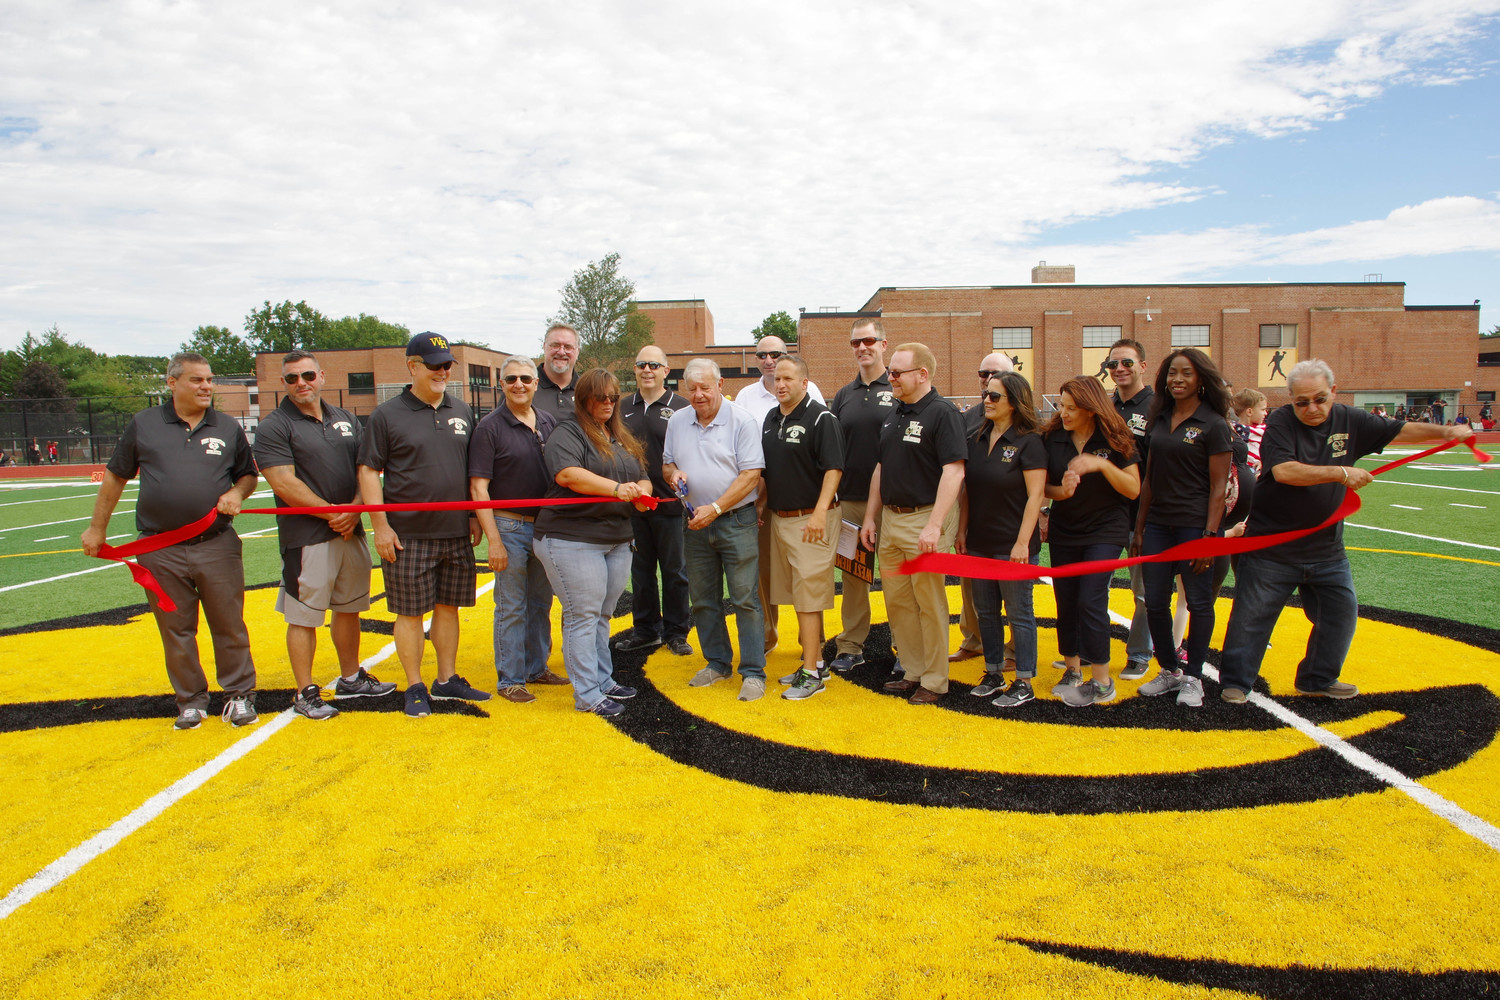 West Hempstead School District's Board of Ed did the honors of cutting the ribbon for the high school's newly installed artificial turf field during their Homecoming ceremony on Sept. 22.